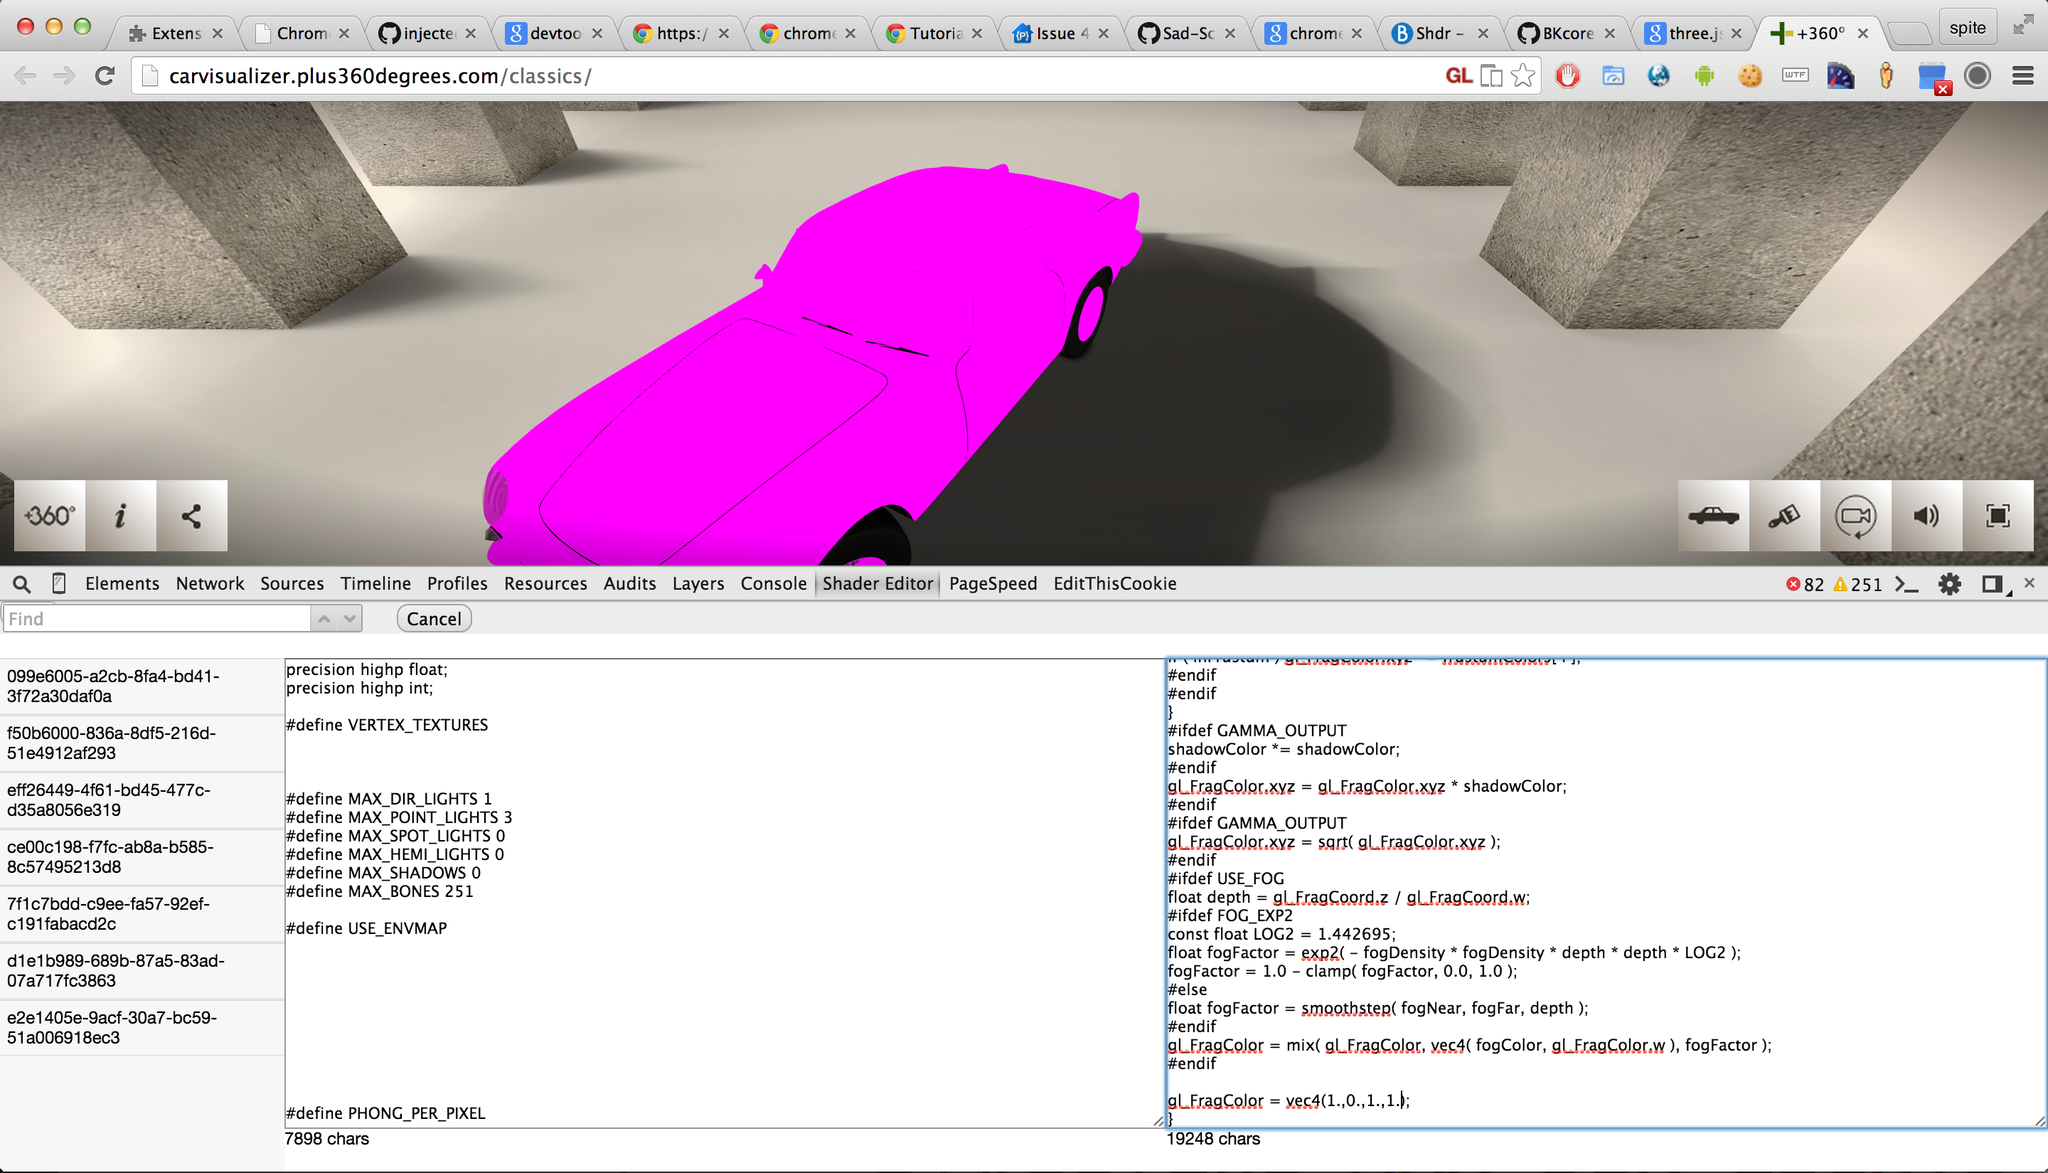 RT @thespite: Almost ready to roll: Chrome DevTools extension to edit WebGL shaders. Edit any GLSL code with live feedback :) http://t.co/pkw85QFIPO